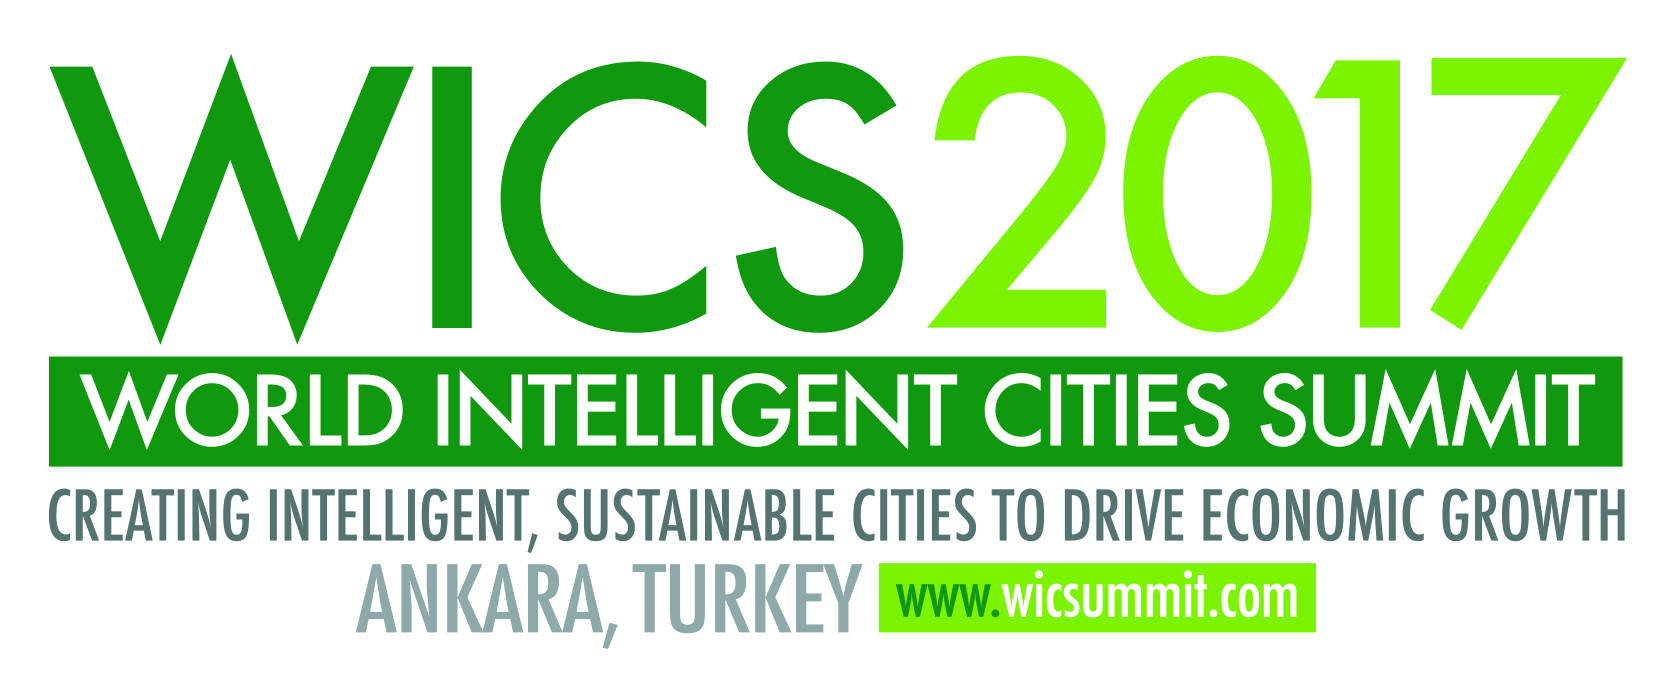 World Intelligent Cities Summit (WICS) 2017